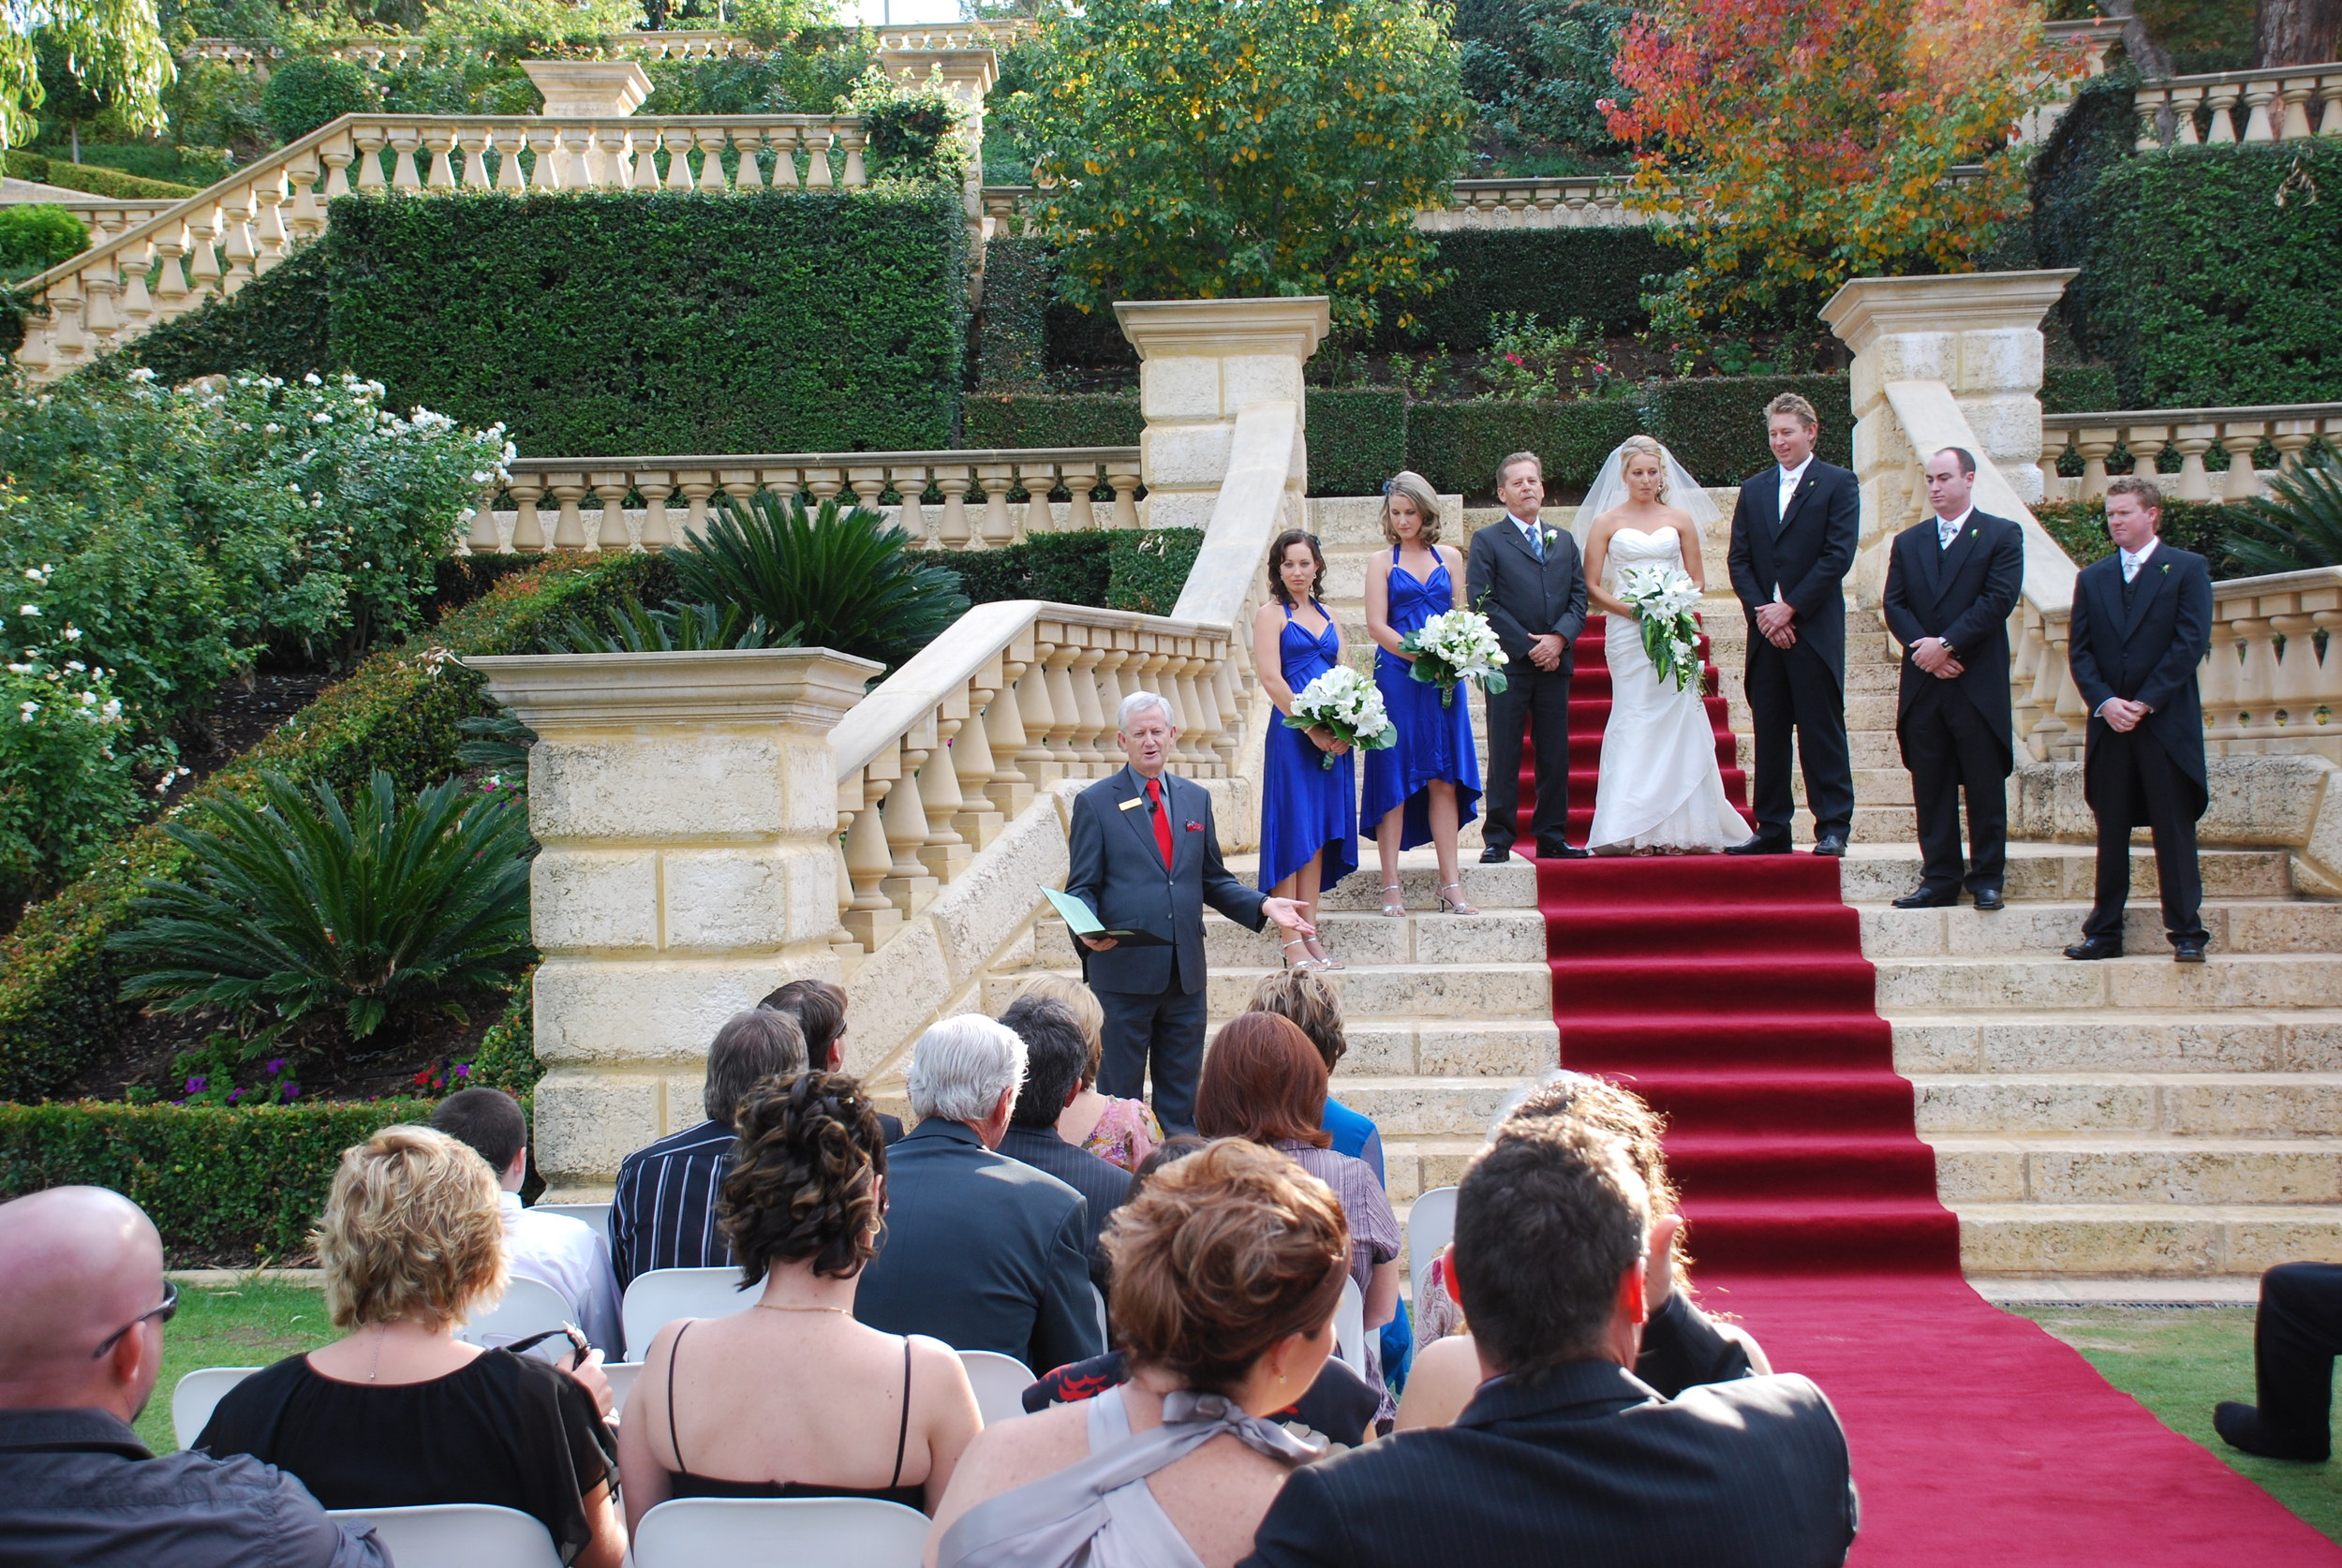 On the steps at Caversham House